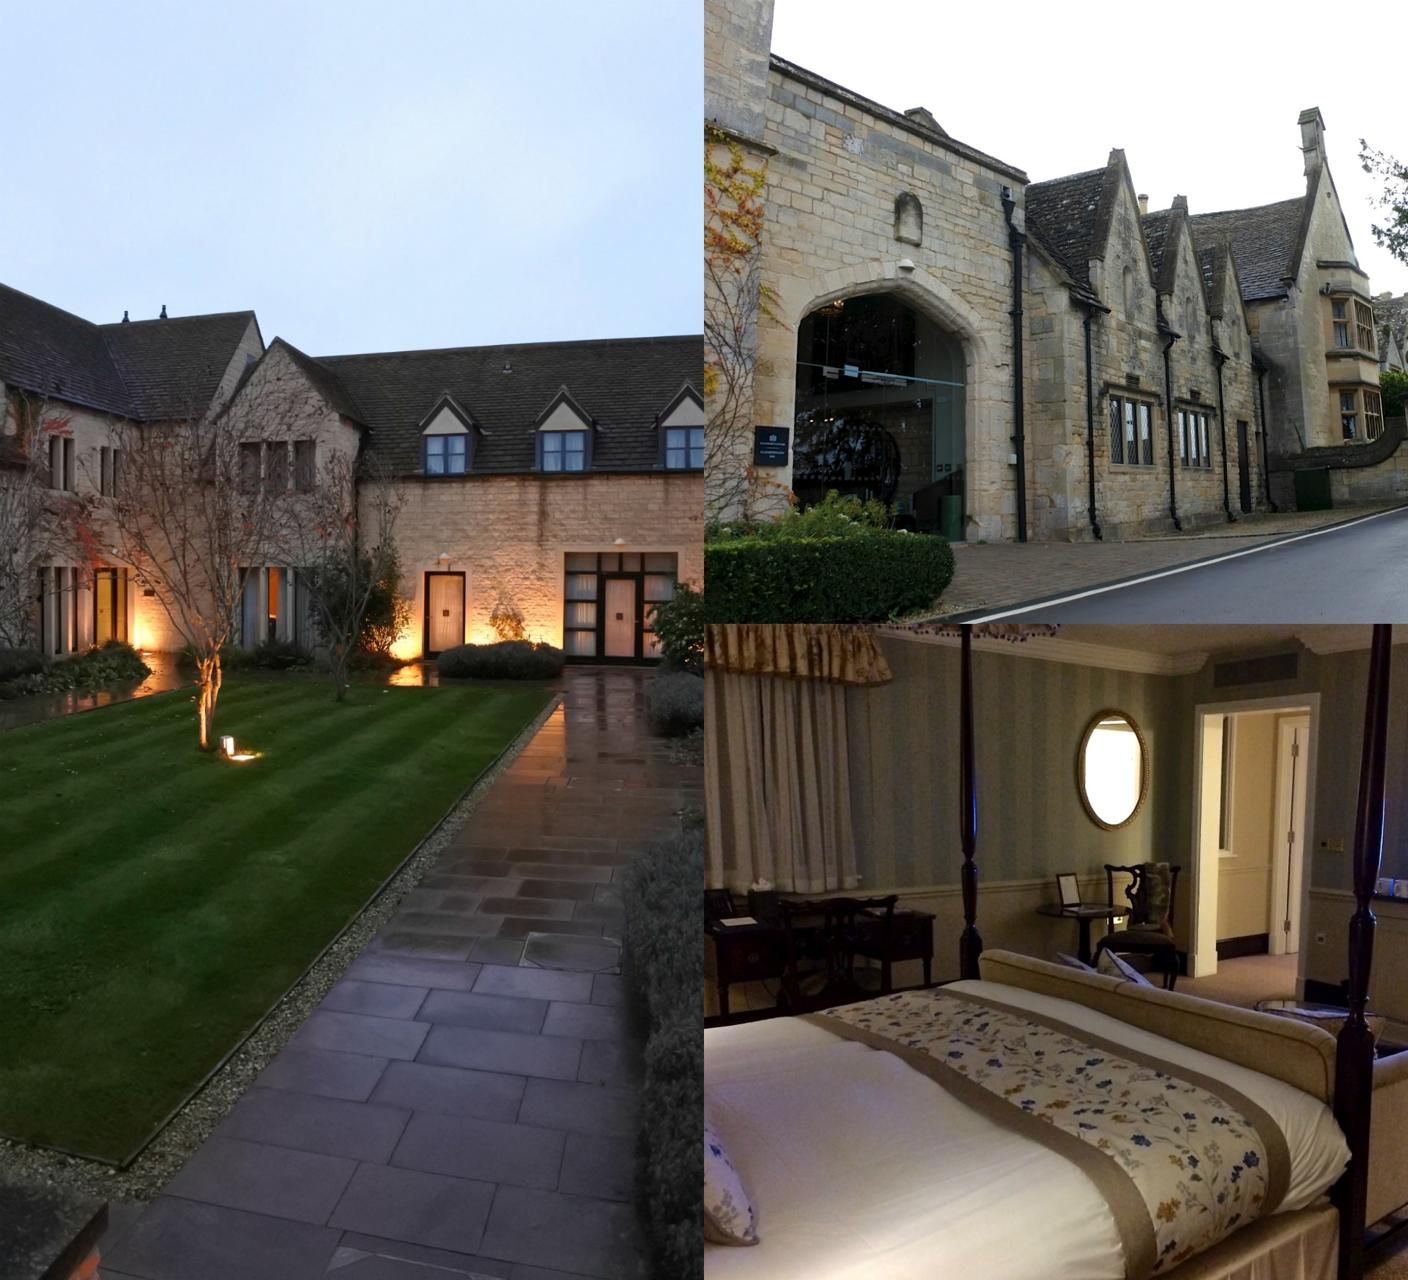 th_Ellenborough Park_7